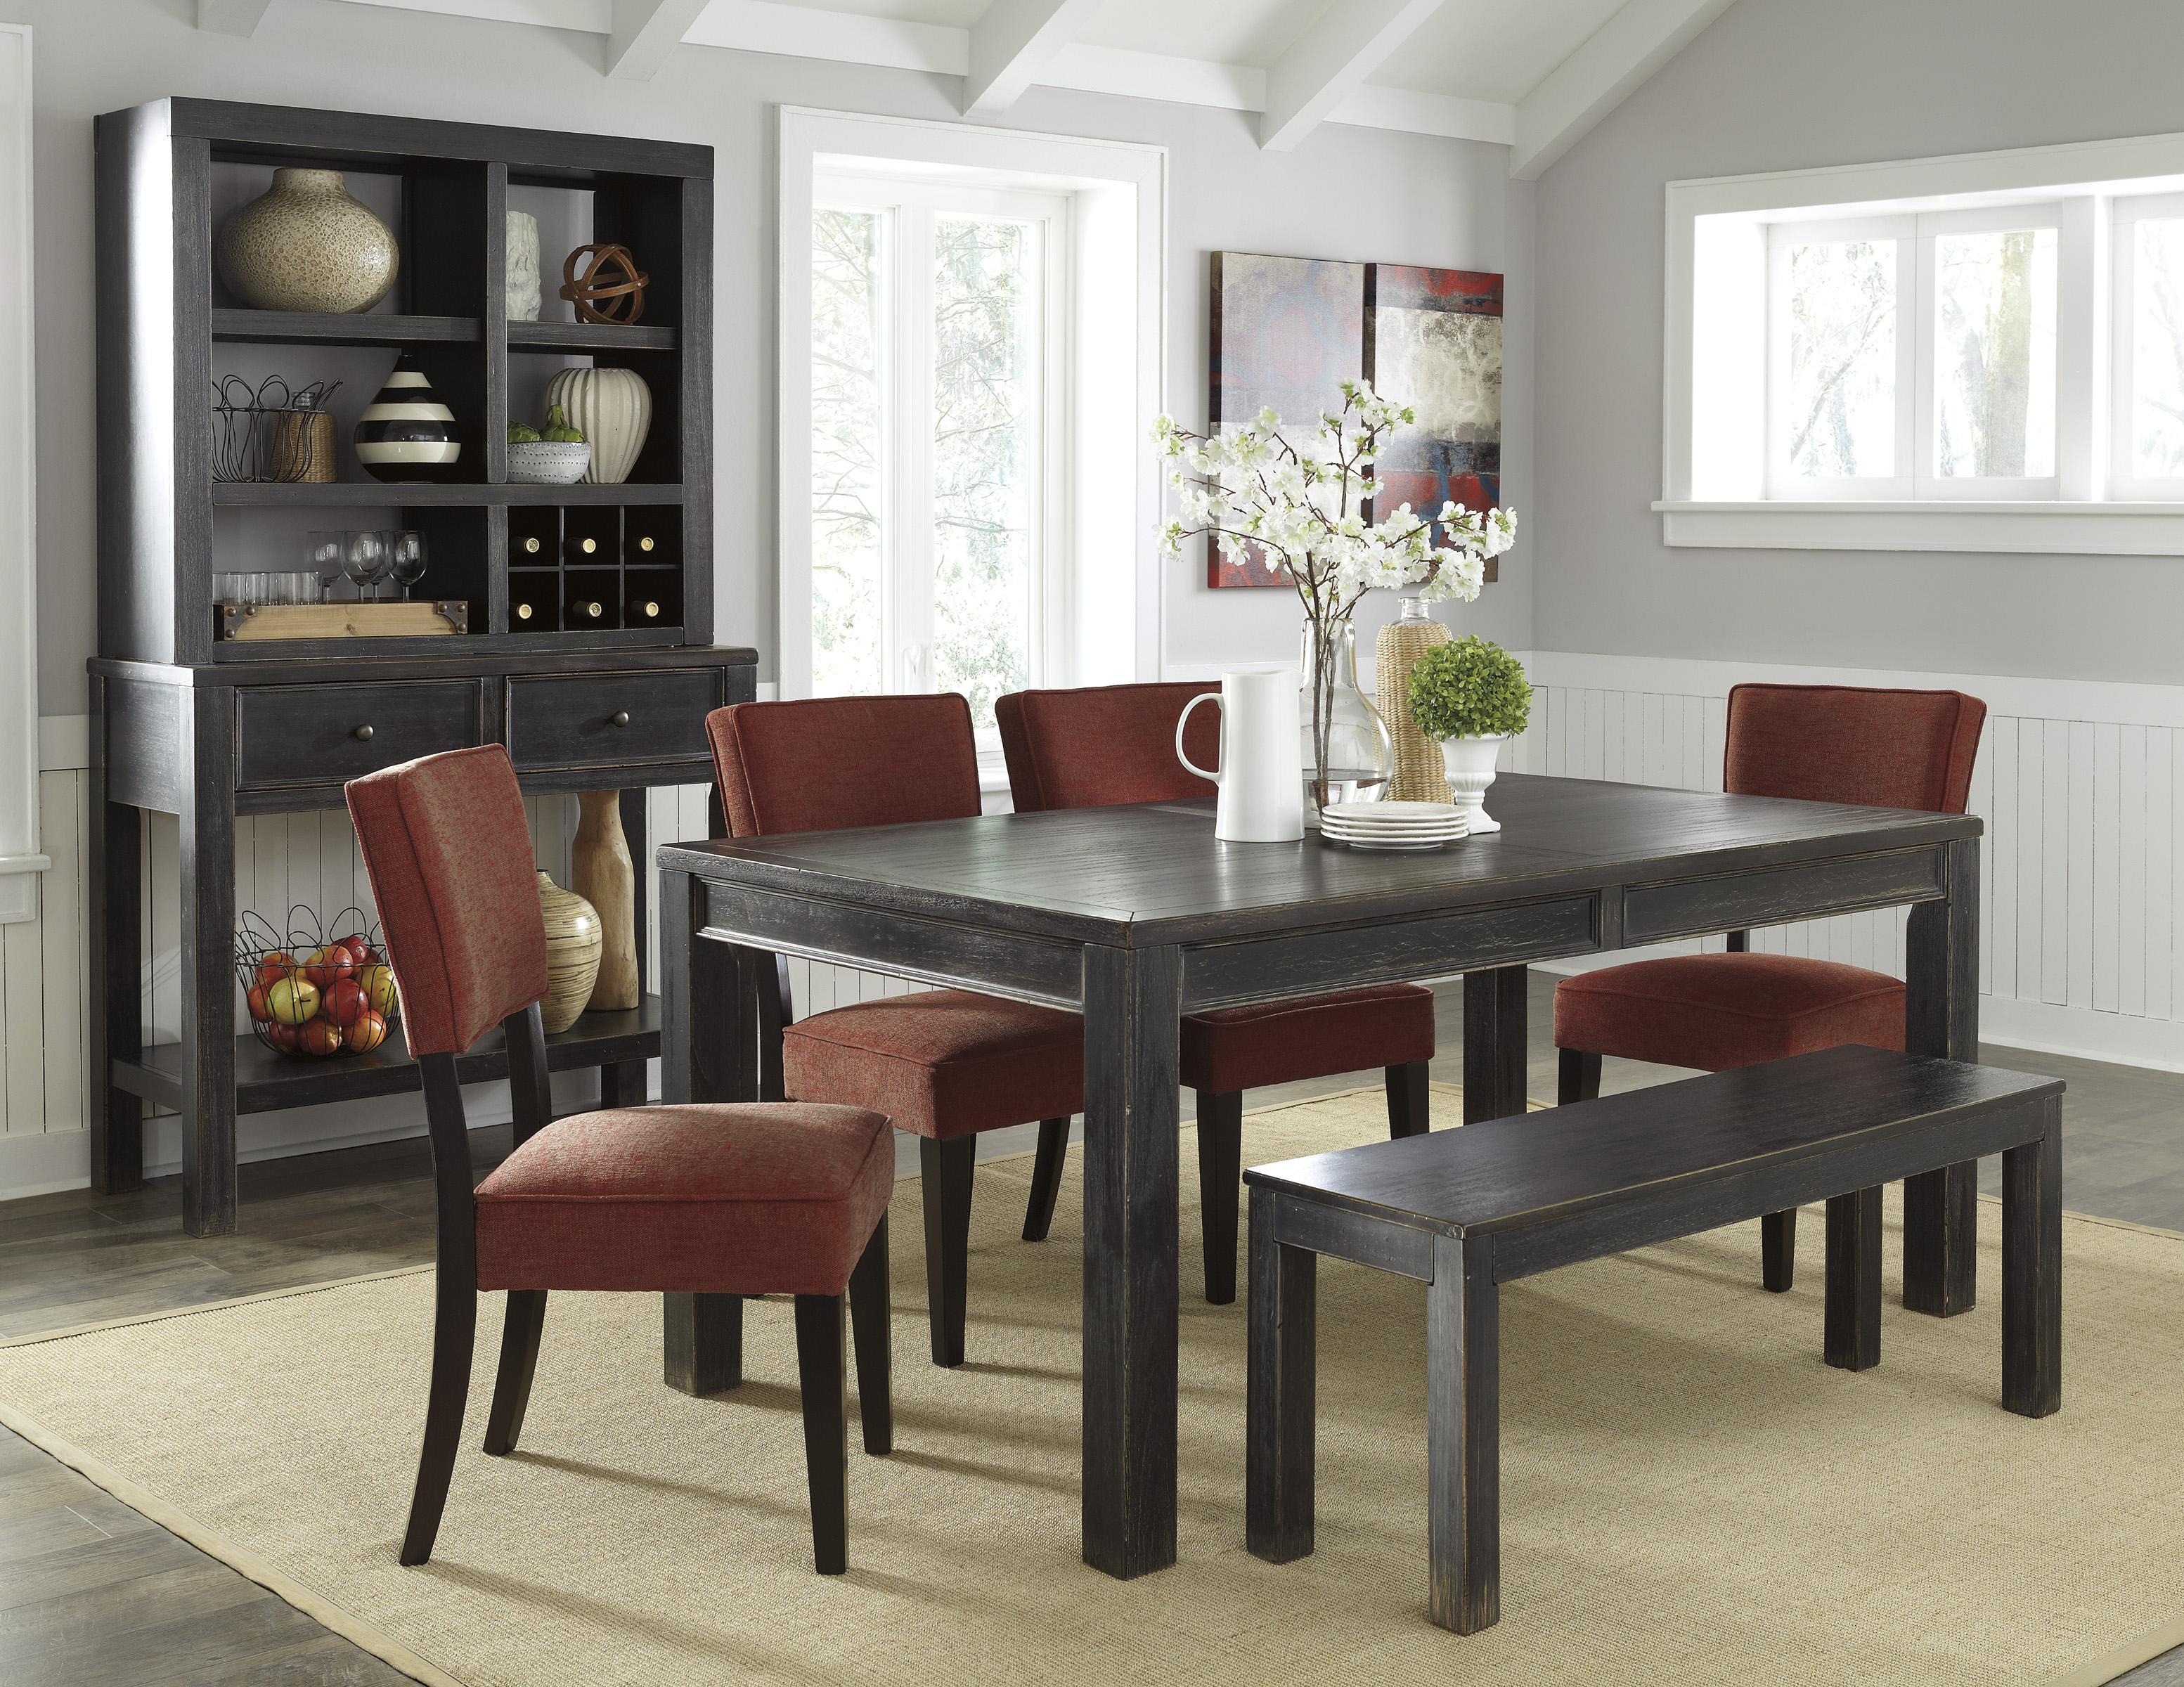 Signature Design by Ashley Gavelston Casual Dining Room Group - Item Number: D532 Dining Room Group 9